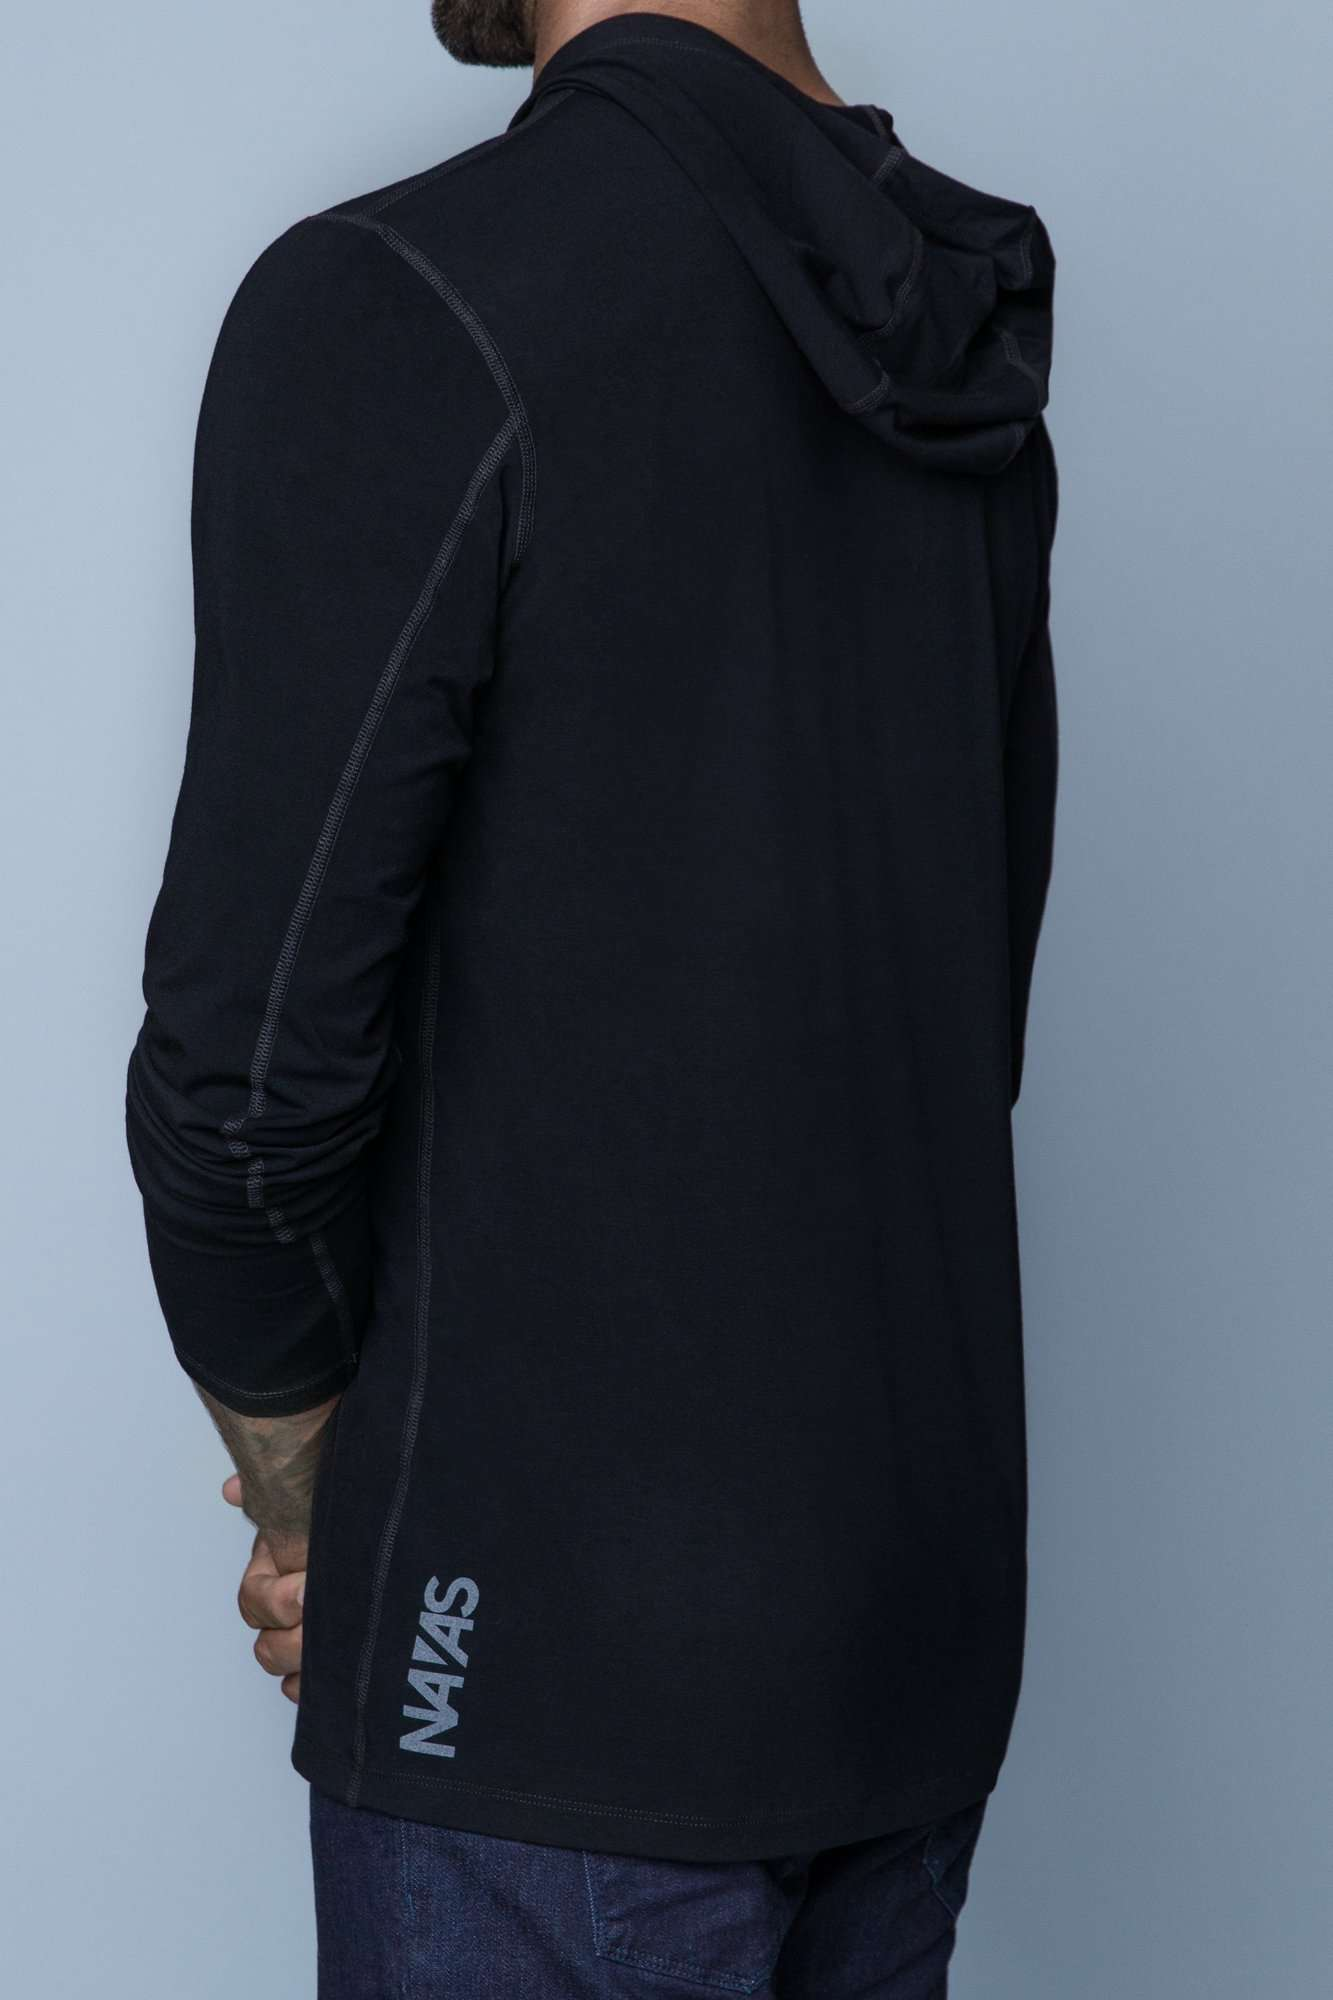 The Navas Lab Vasquez 2020 long-sleeve hooded shirt for tall guys in black. The perfect tall slim shirt for tall and slim guys looking for style and comfort.